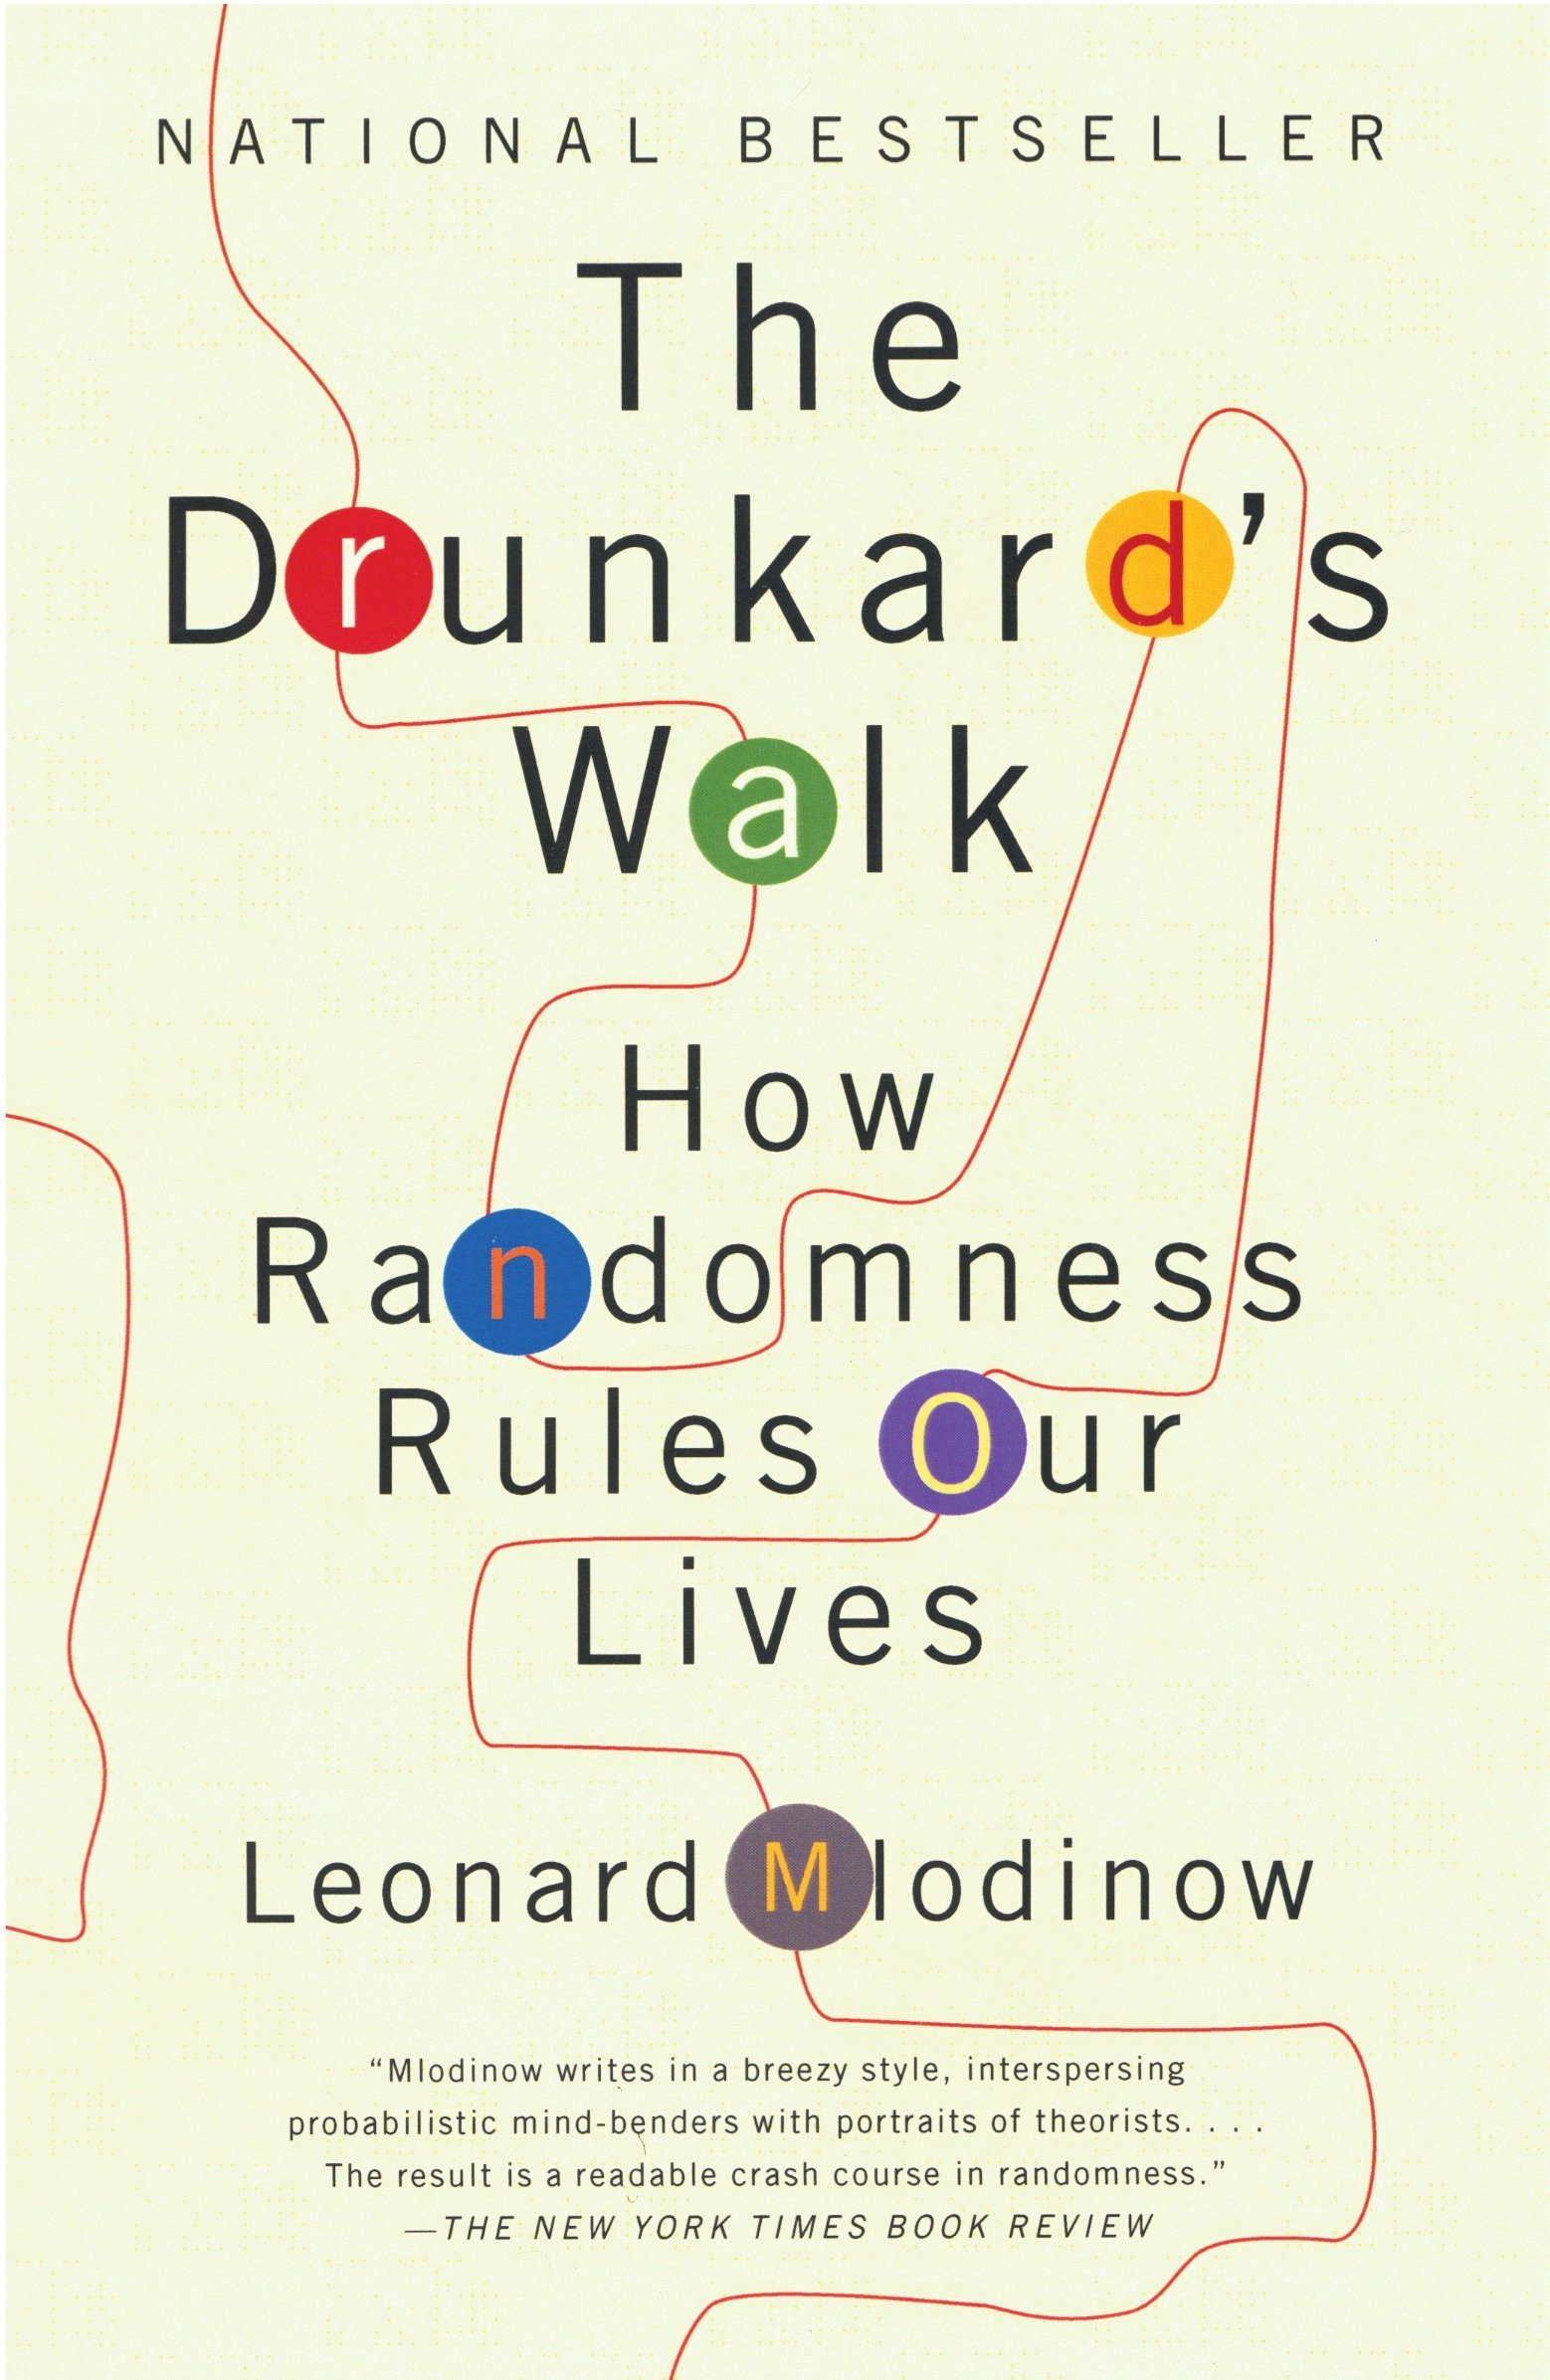 The Drunkards Walk How Randomness Rules Our Lives Leonard